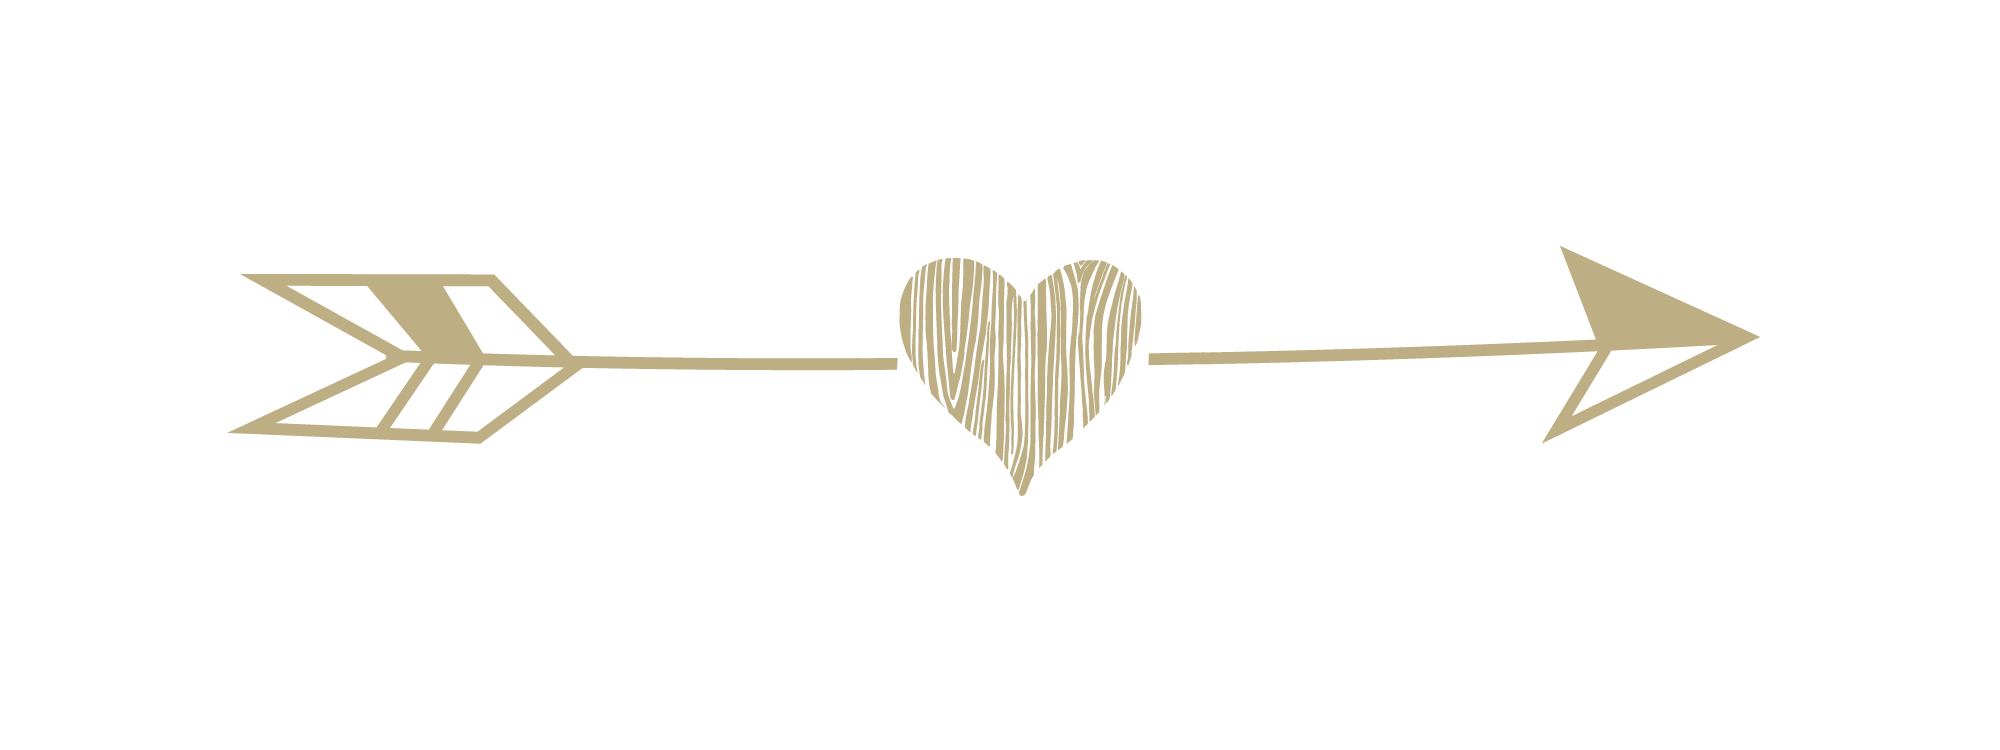 Heart, png rustic. Advertise wedding chic rwcarrow